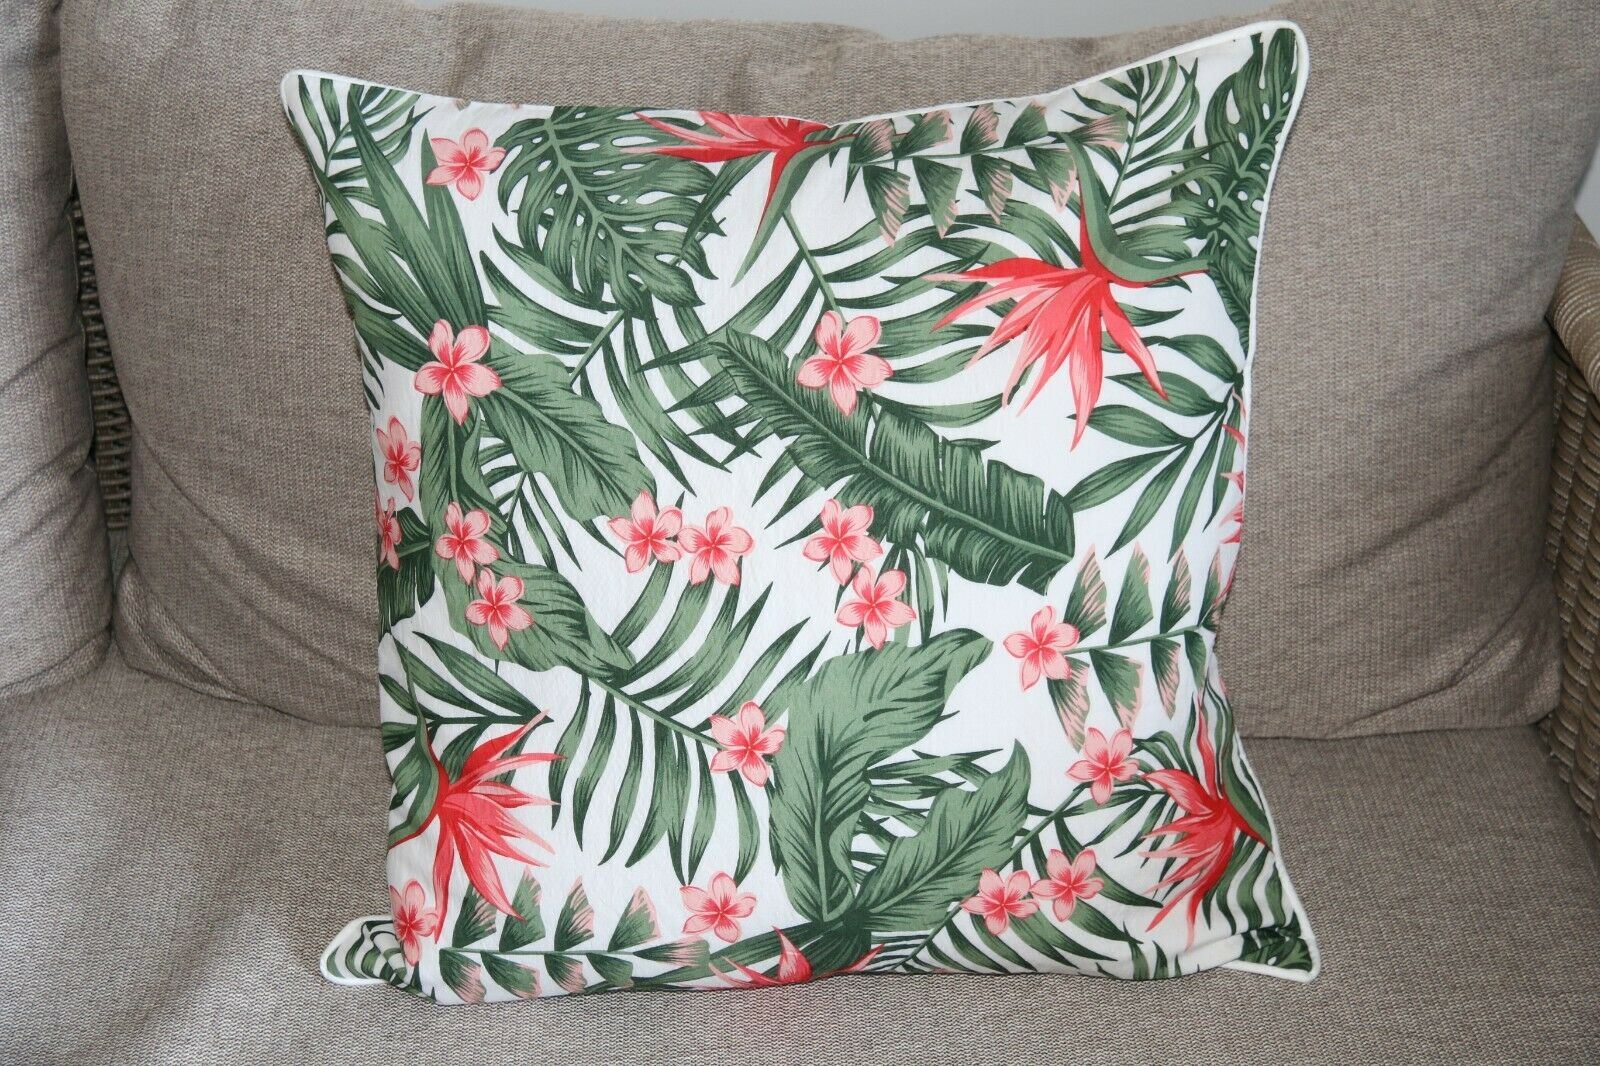 NEW Tropical Cushion Cover - 2 sizes 40 x 40cm or 50 x 50cm (Cover ONLY)